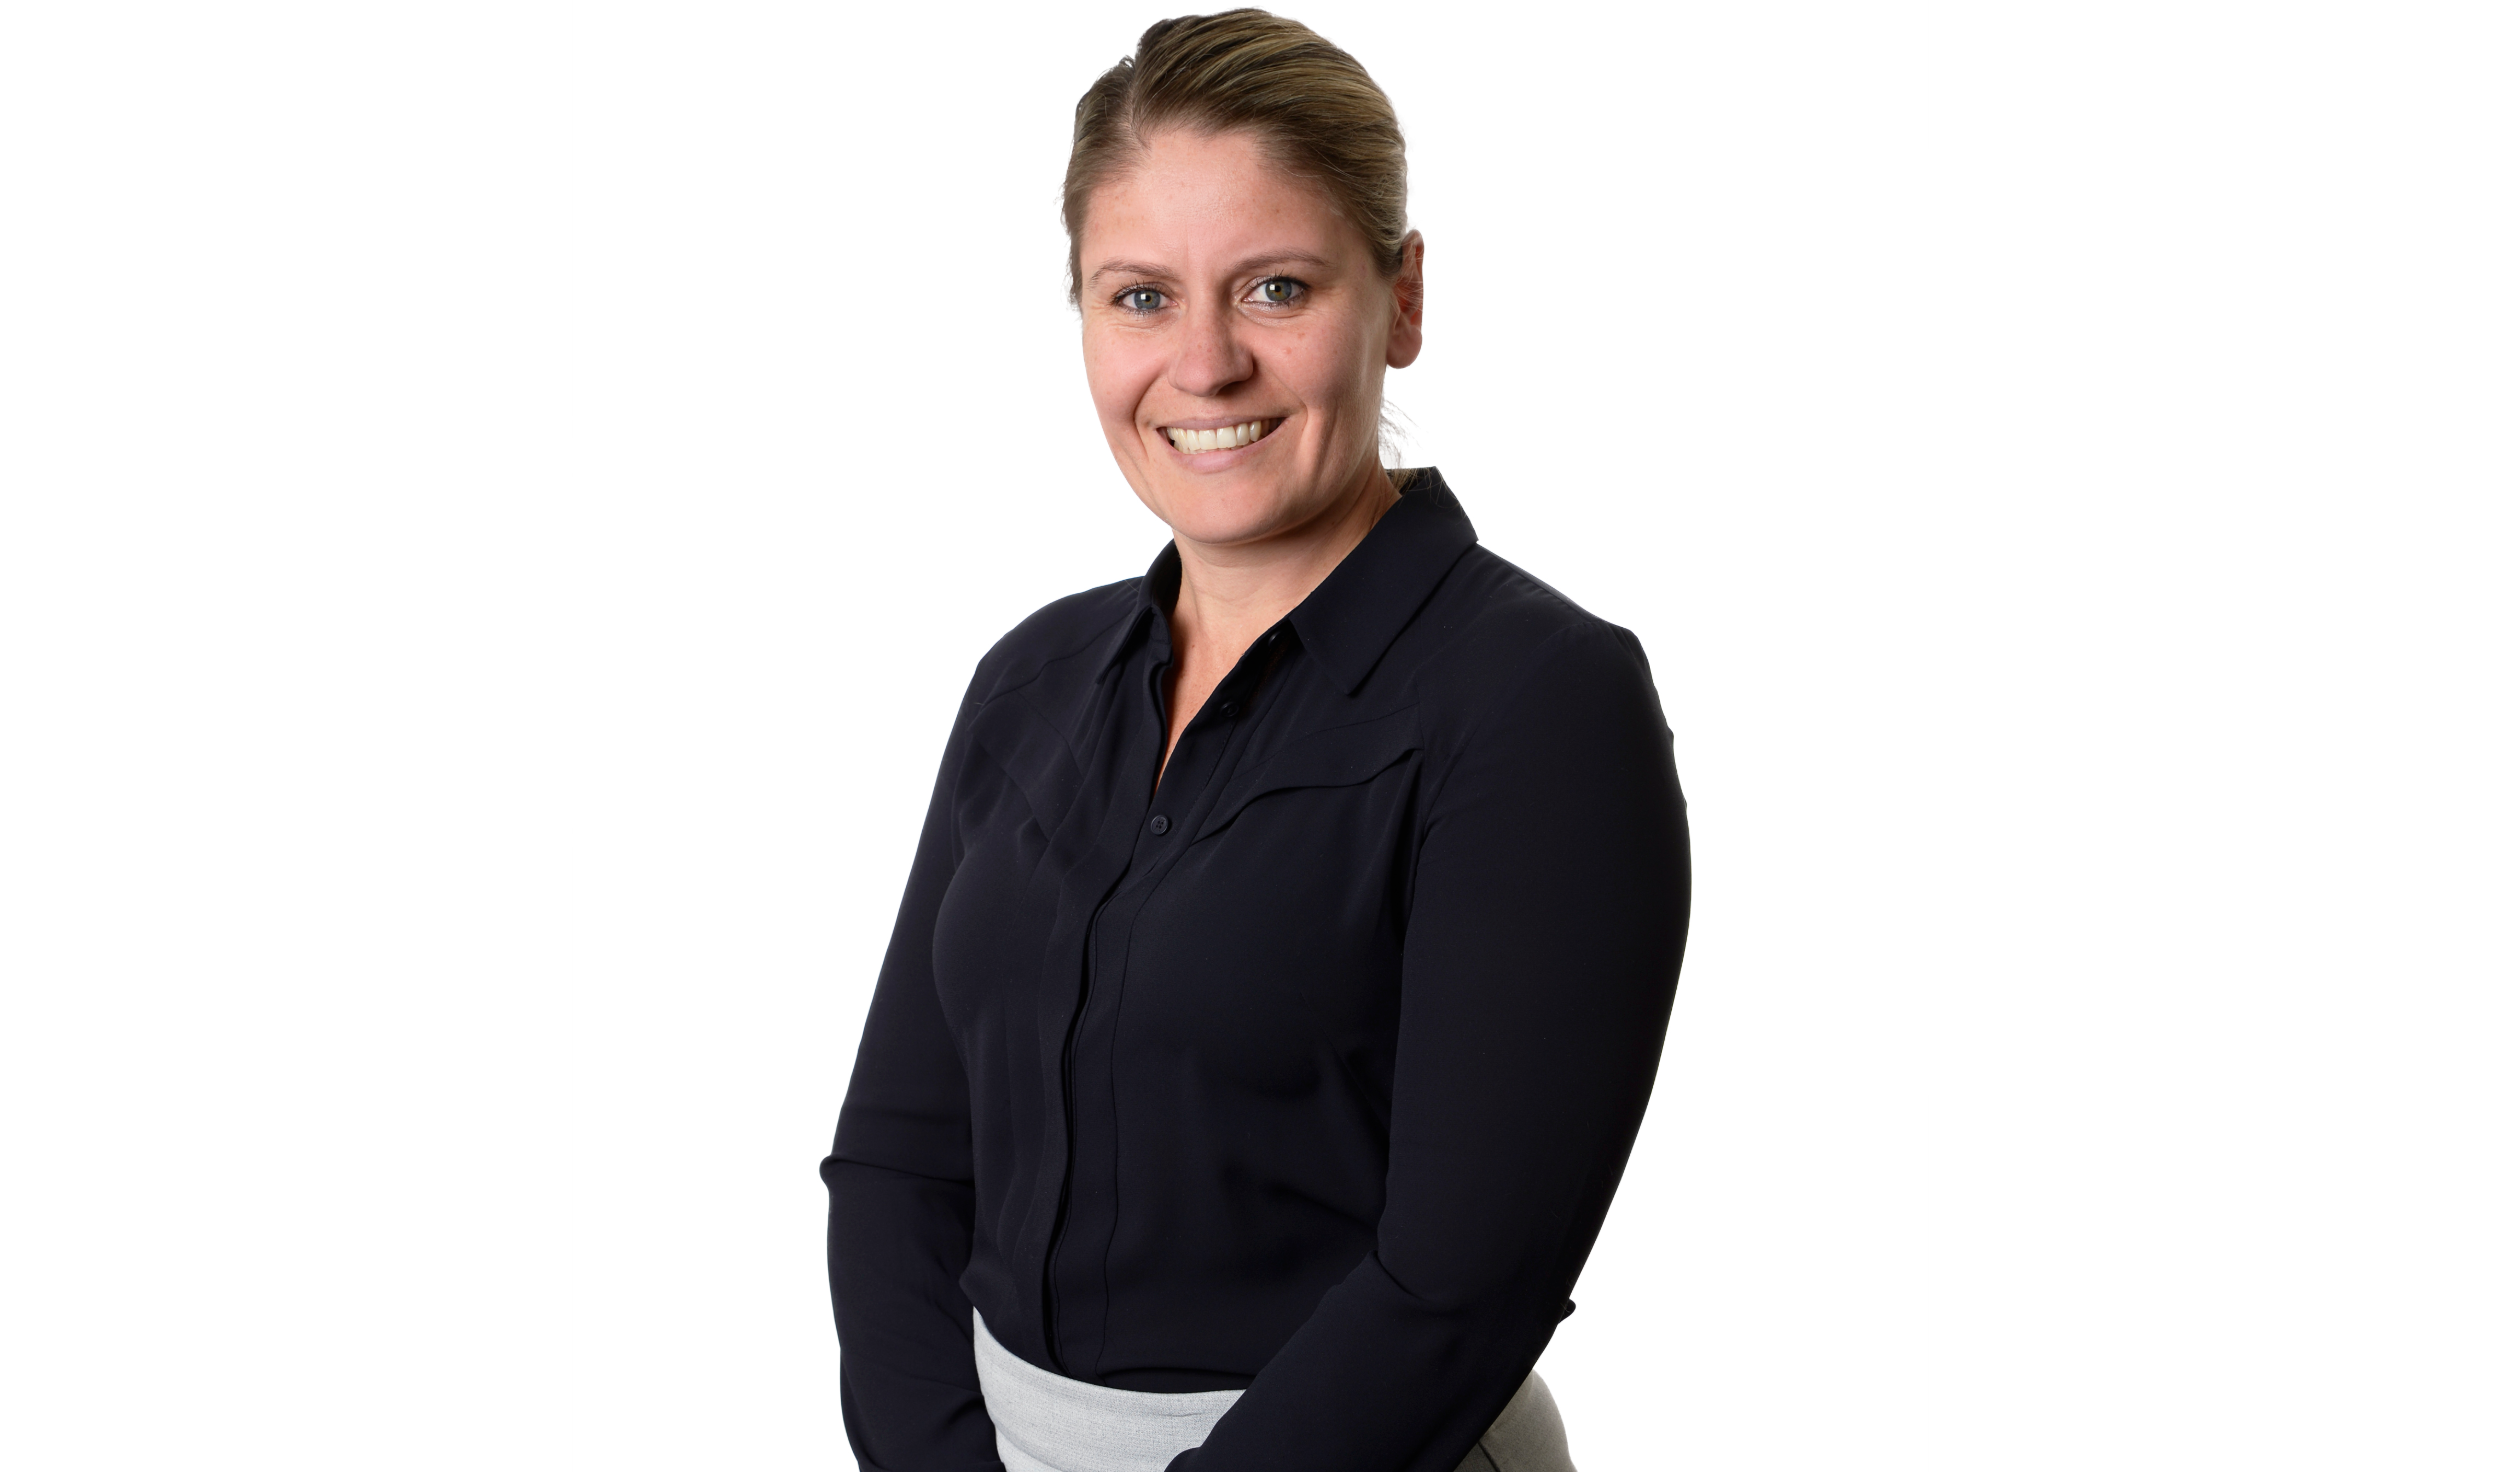 Knight Frank's Kate MacDonald heads to CBRE Hotels - The Shout